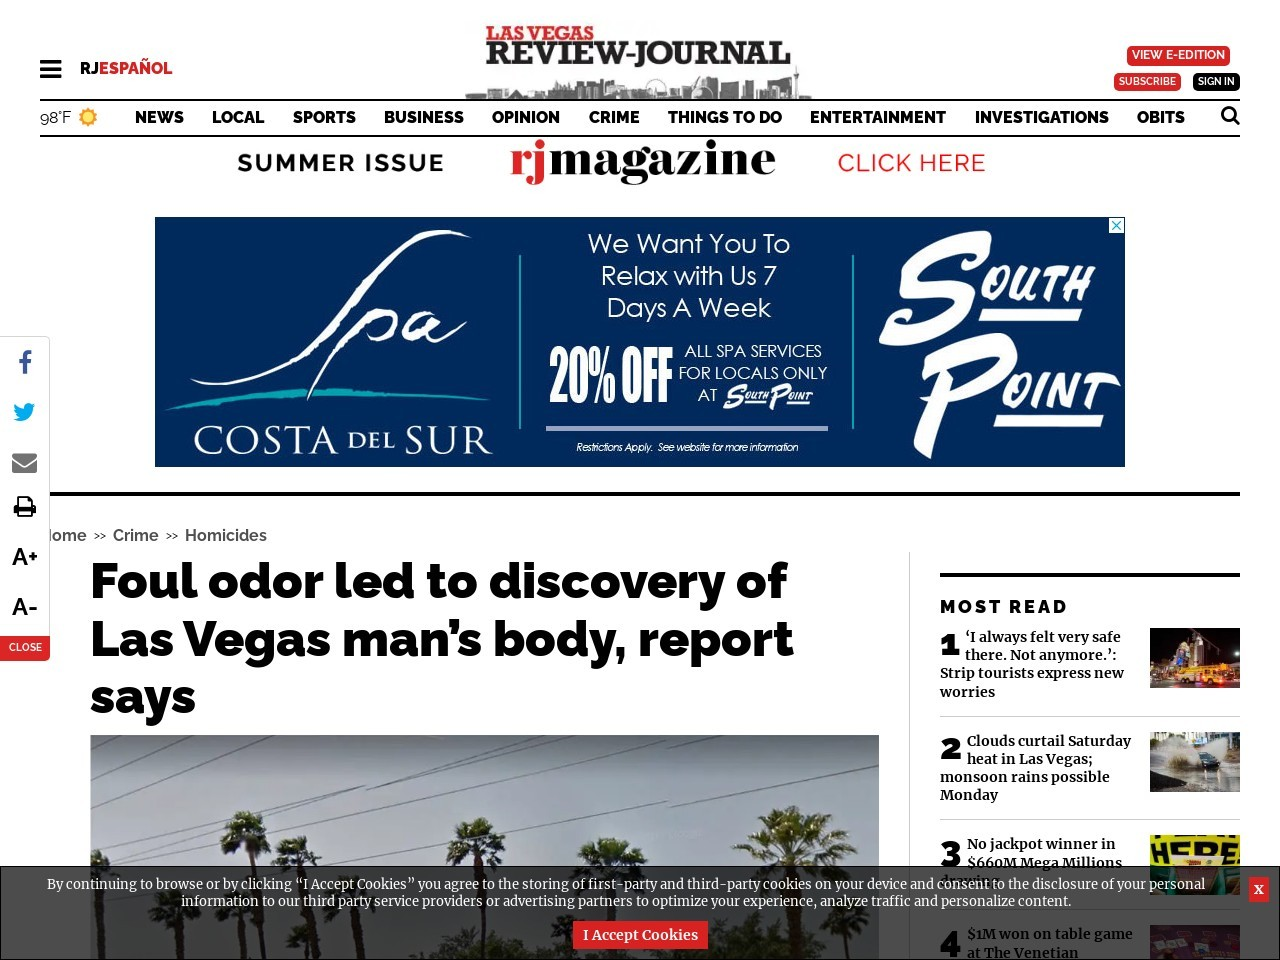 Foul odor led to discovery of Las Vegas man's body, report says